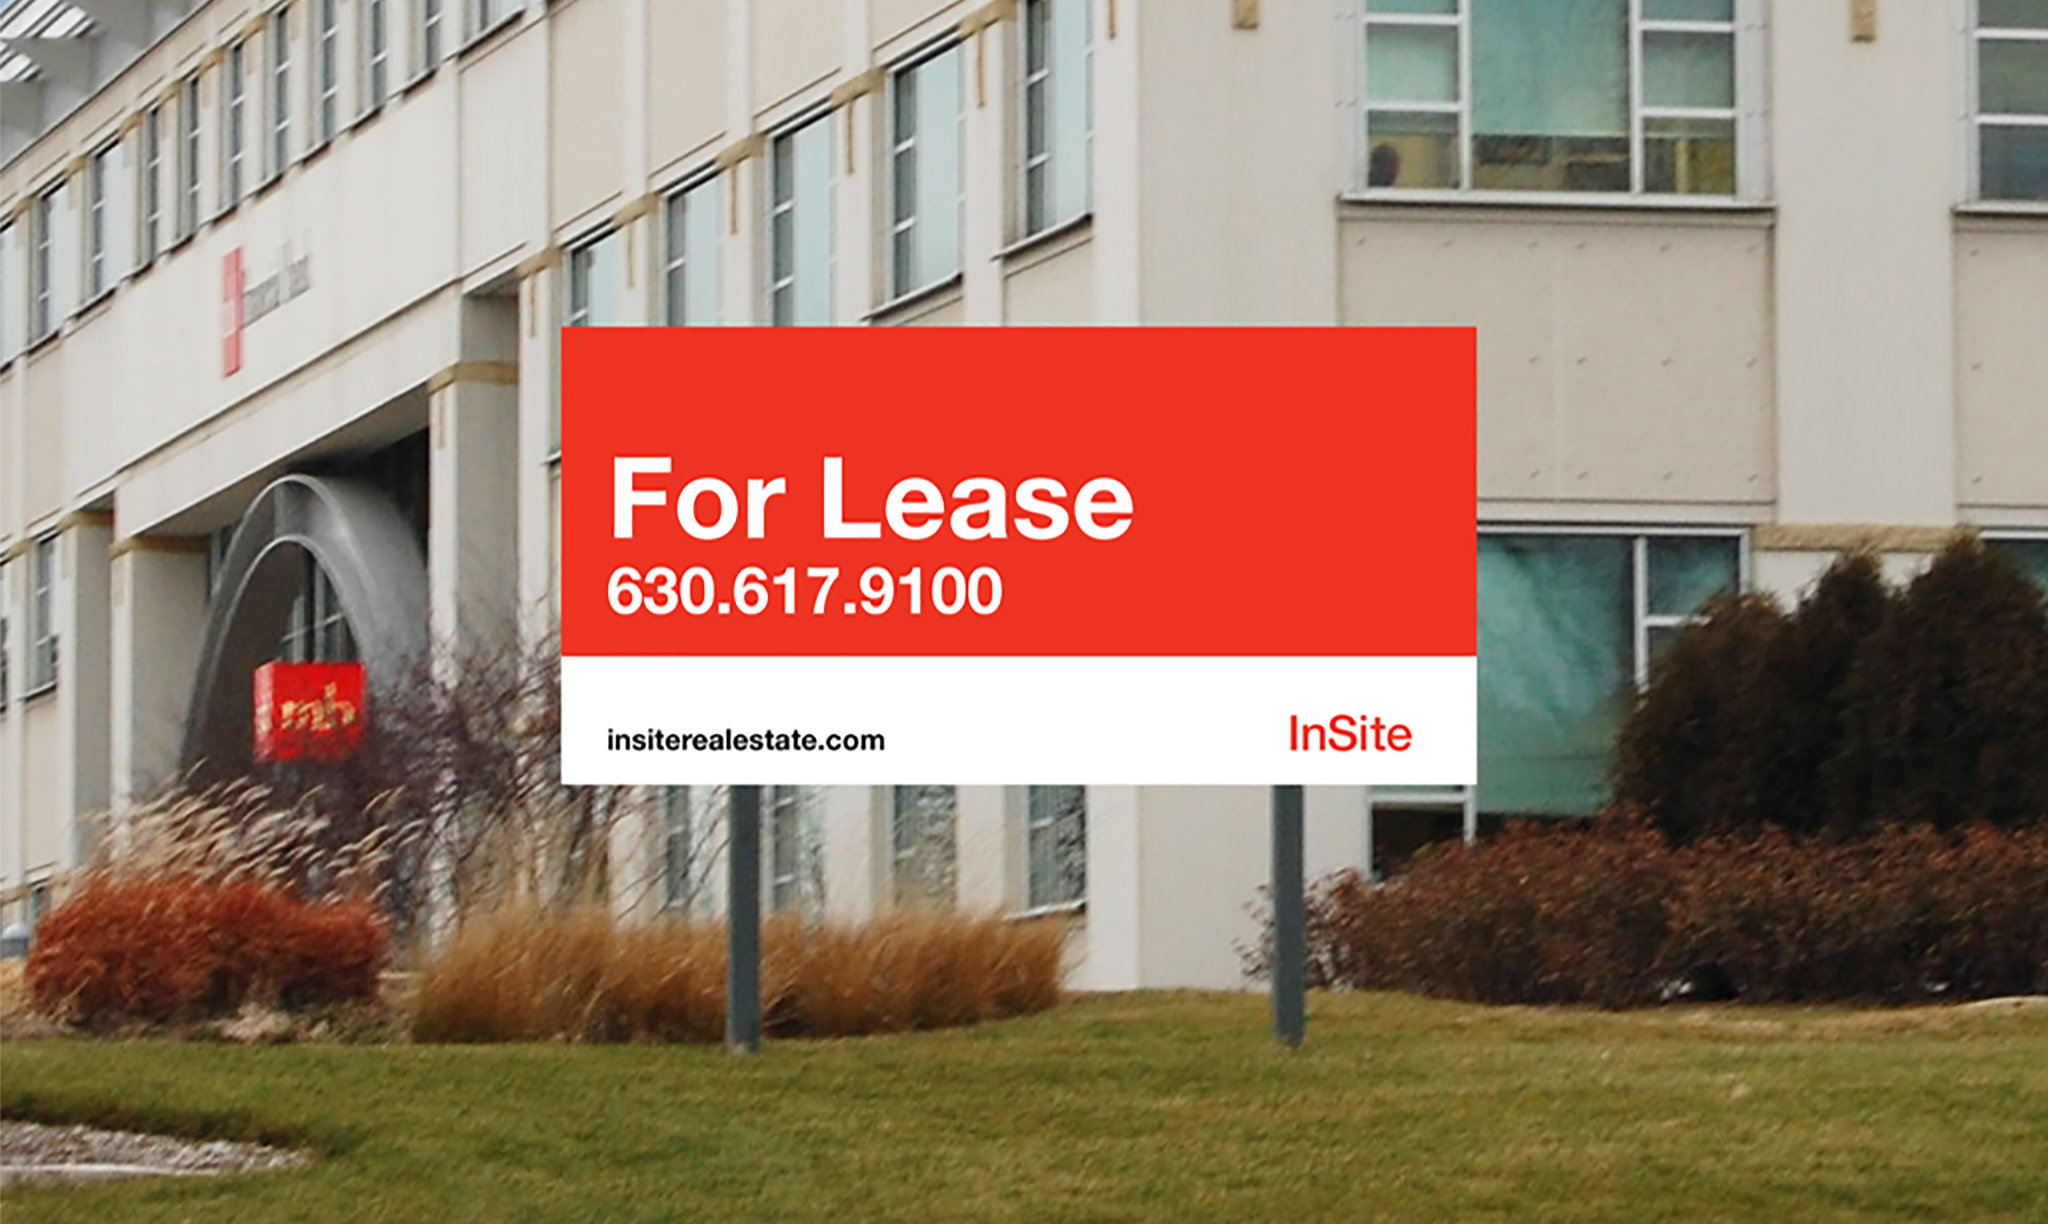 InSite Real Estate Leasing Sign